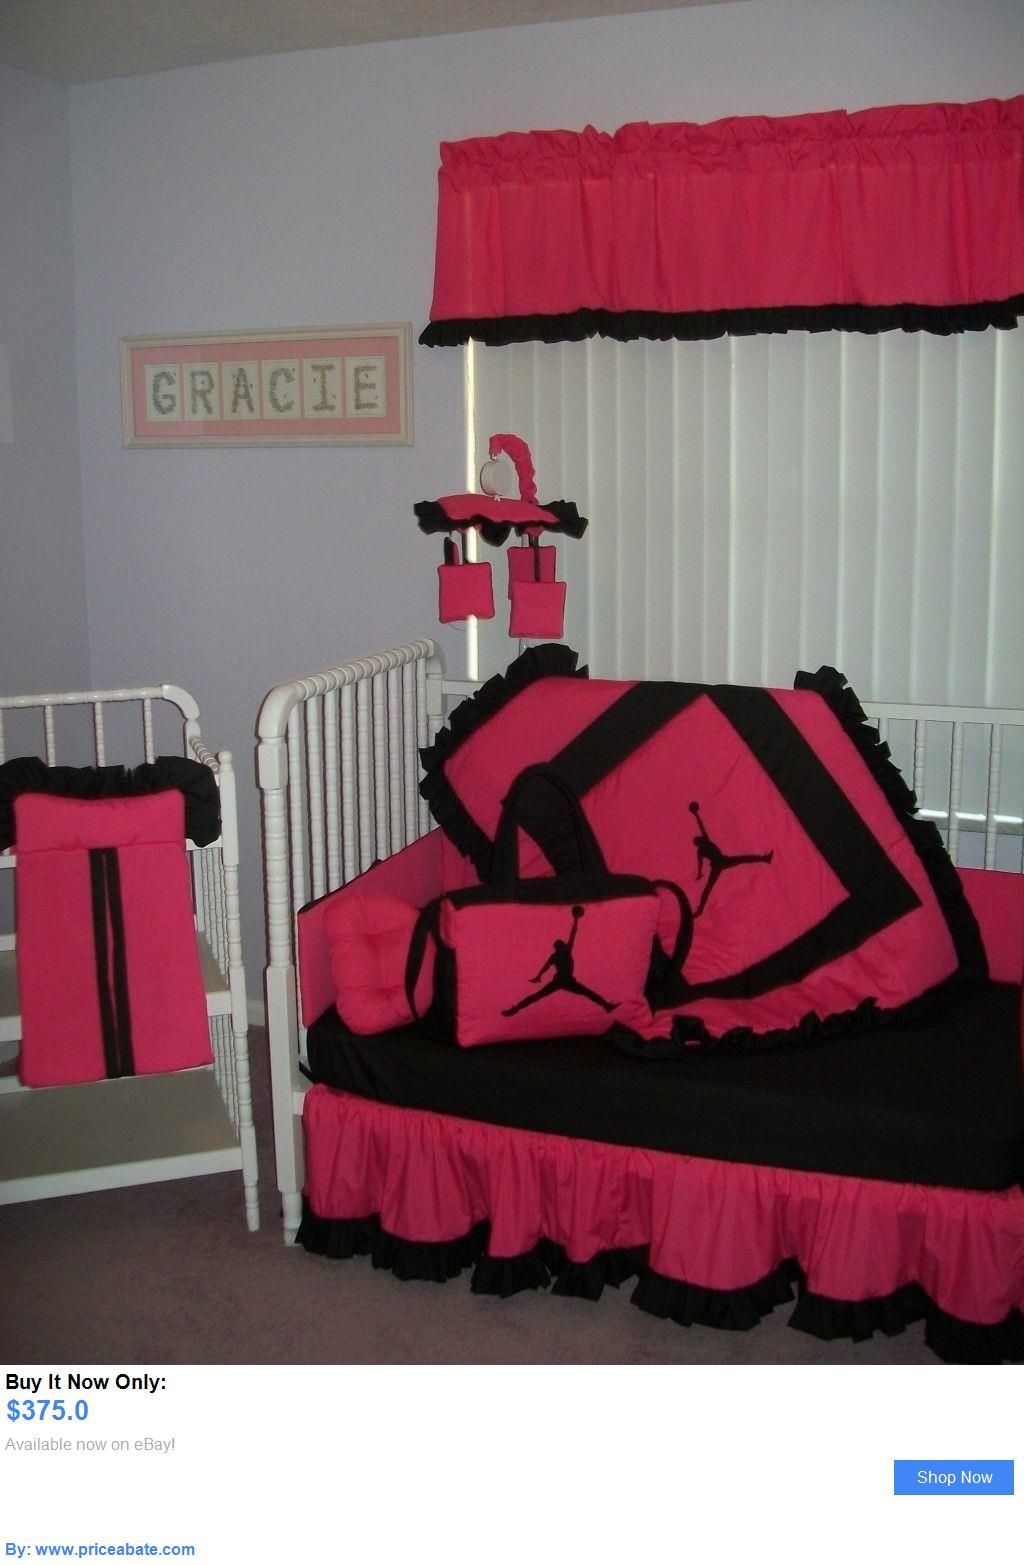 Michael Jordan Baby Clothing Crib Bedding Set Mobile Diaper Bag In Hot Pink And Black It Now Only 375 0